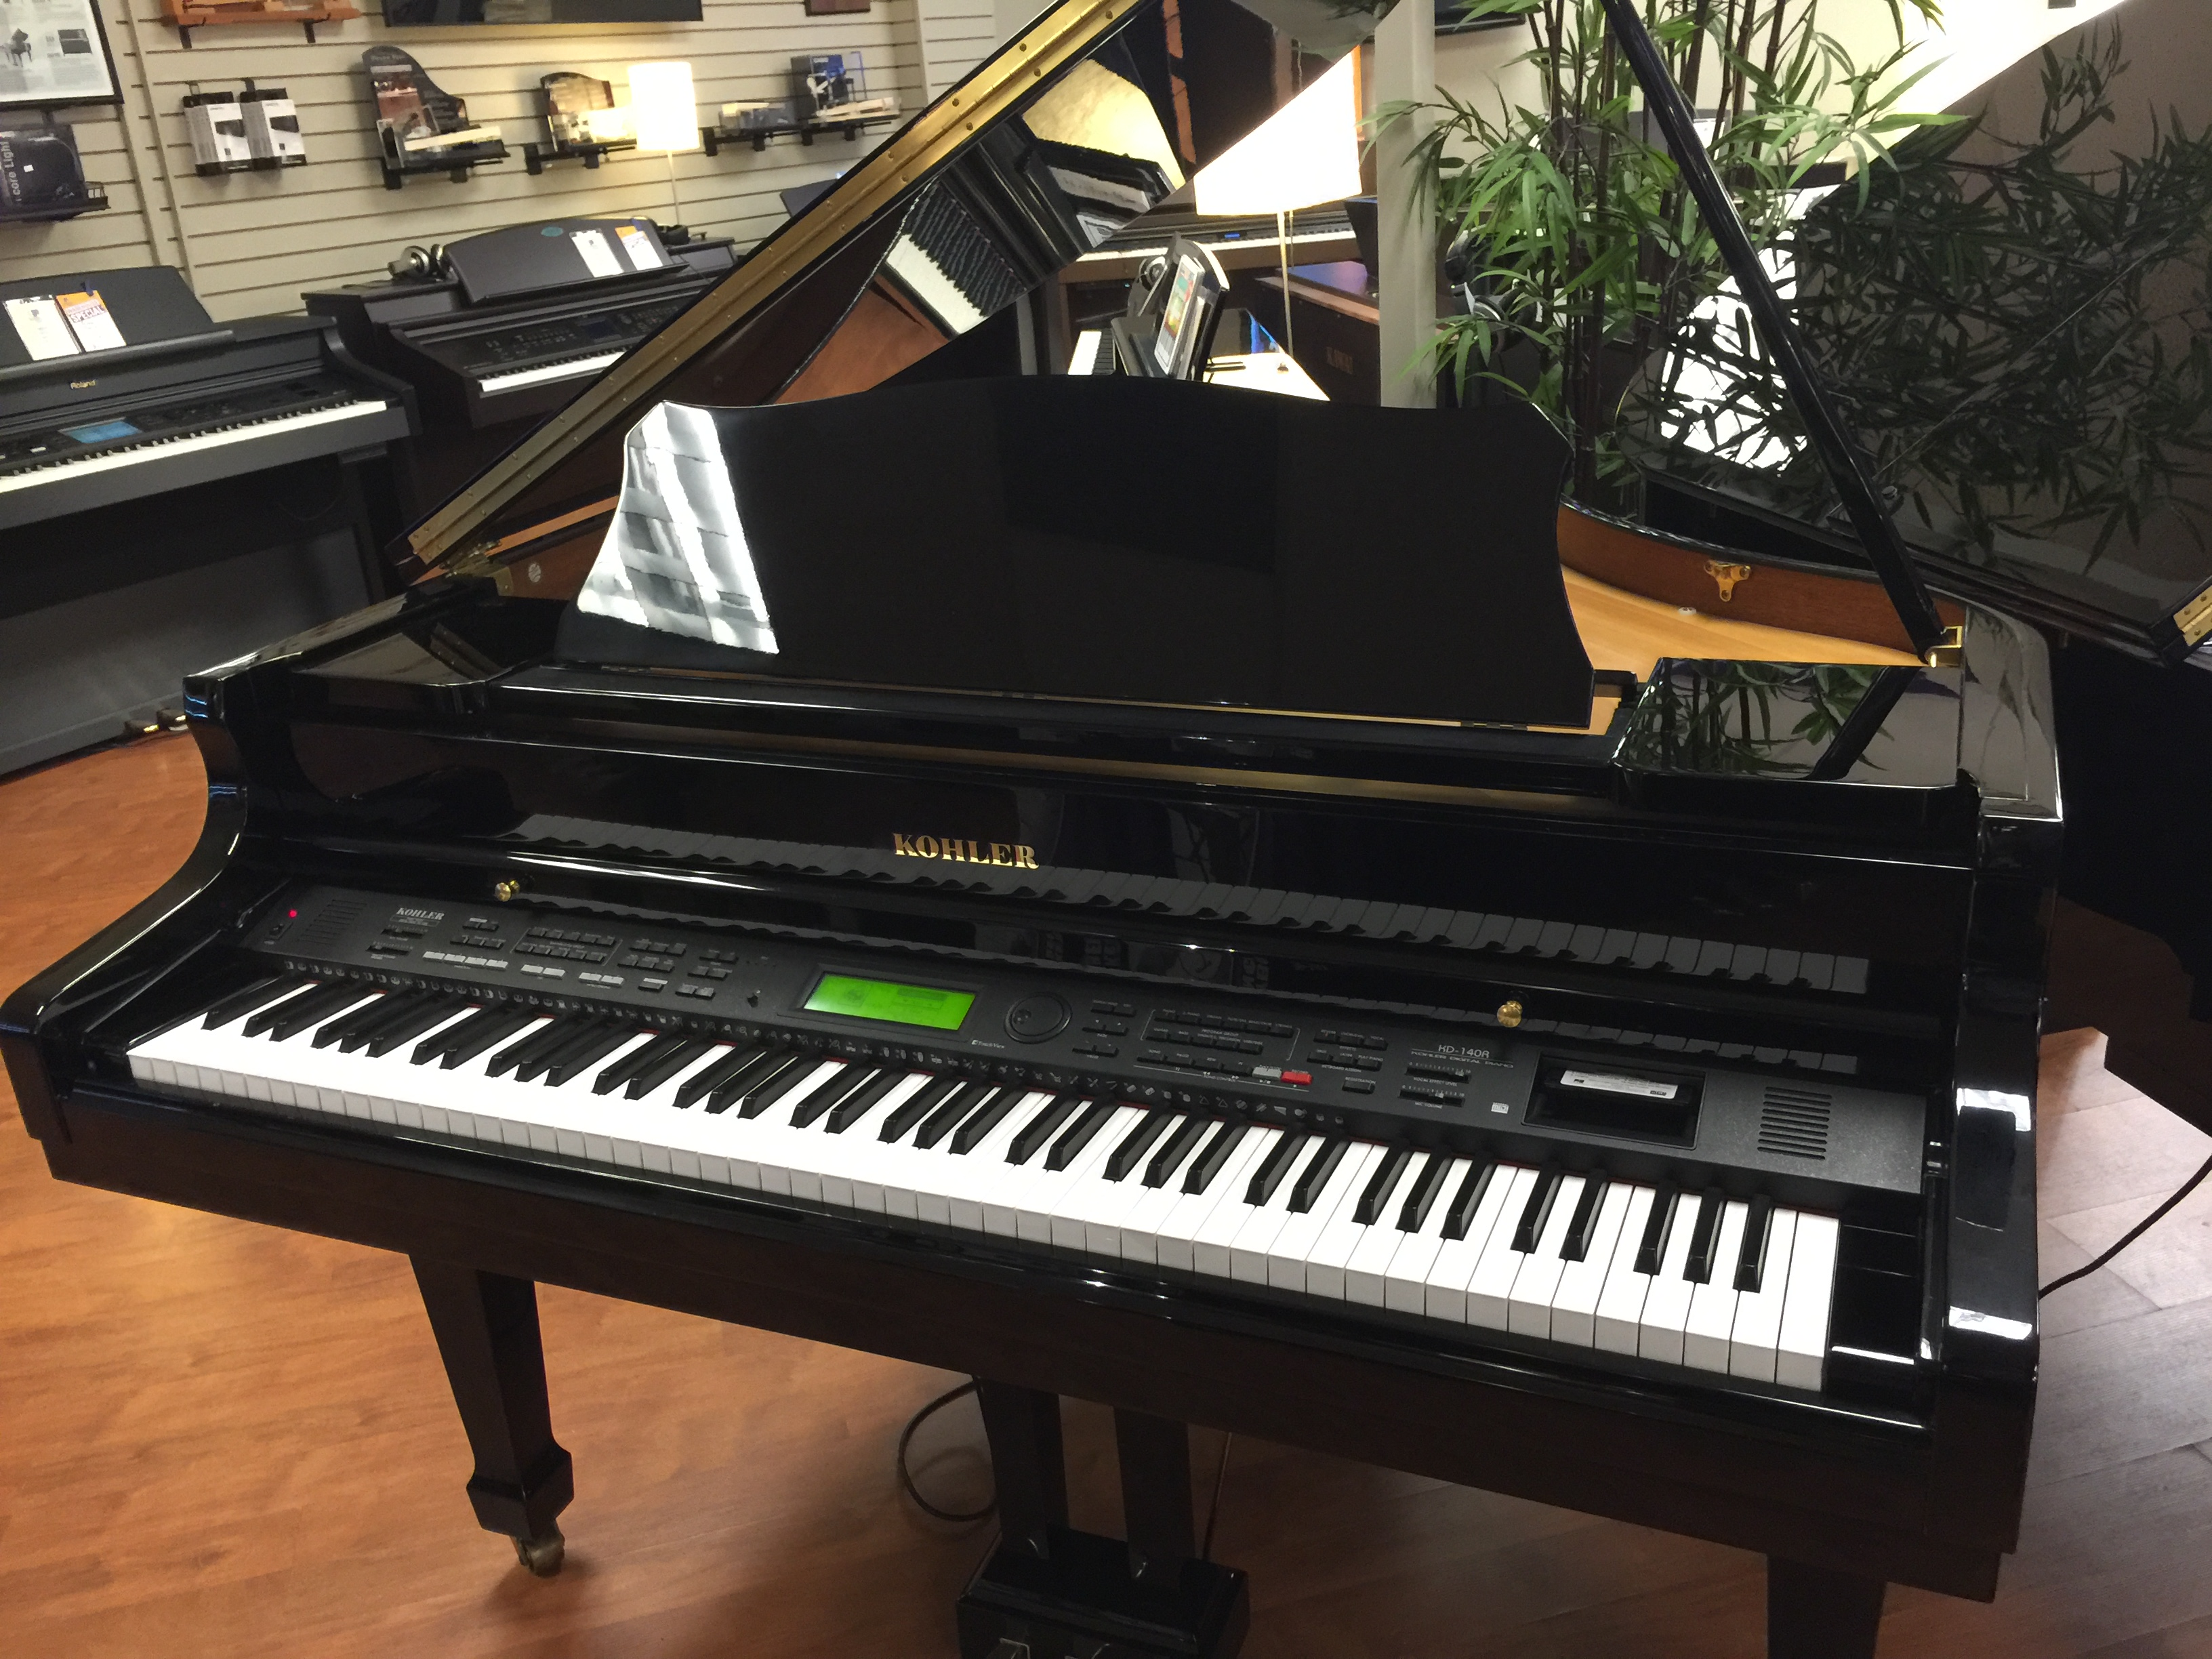 Digital Piano Grand : used kohler campbell digital baby grand piano for sale schmitt music ~ Russianpoet.info Haus und Dekorationen